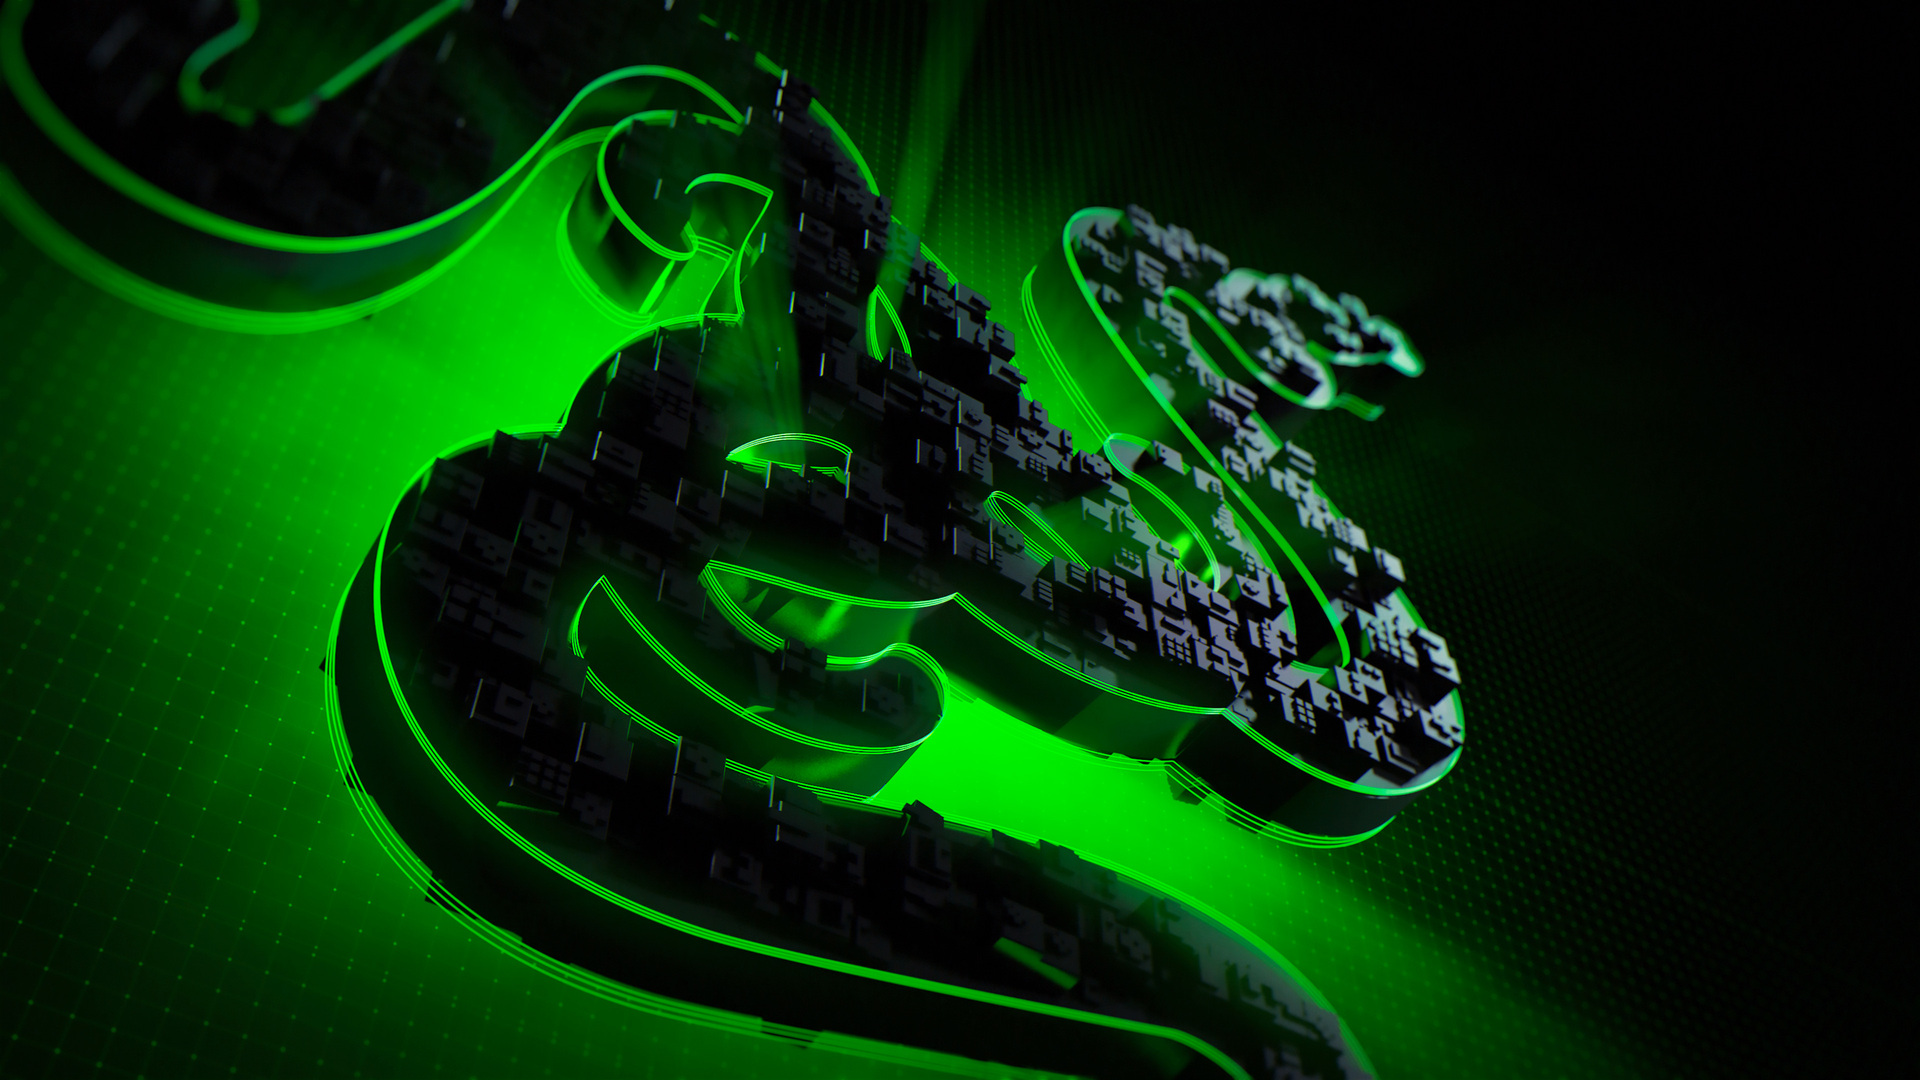 1920x1080 Razer Logo 4k Laptop Full HD 1080P HD 4k